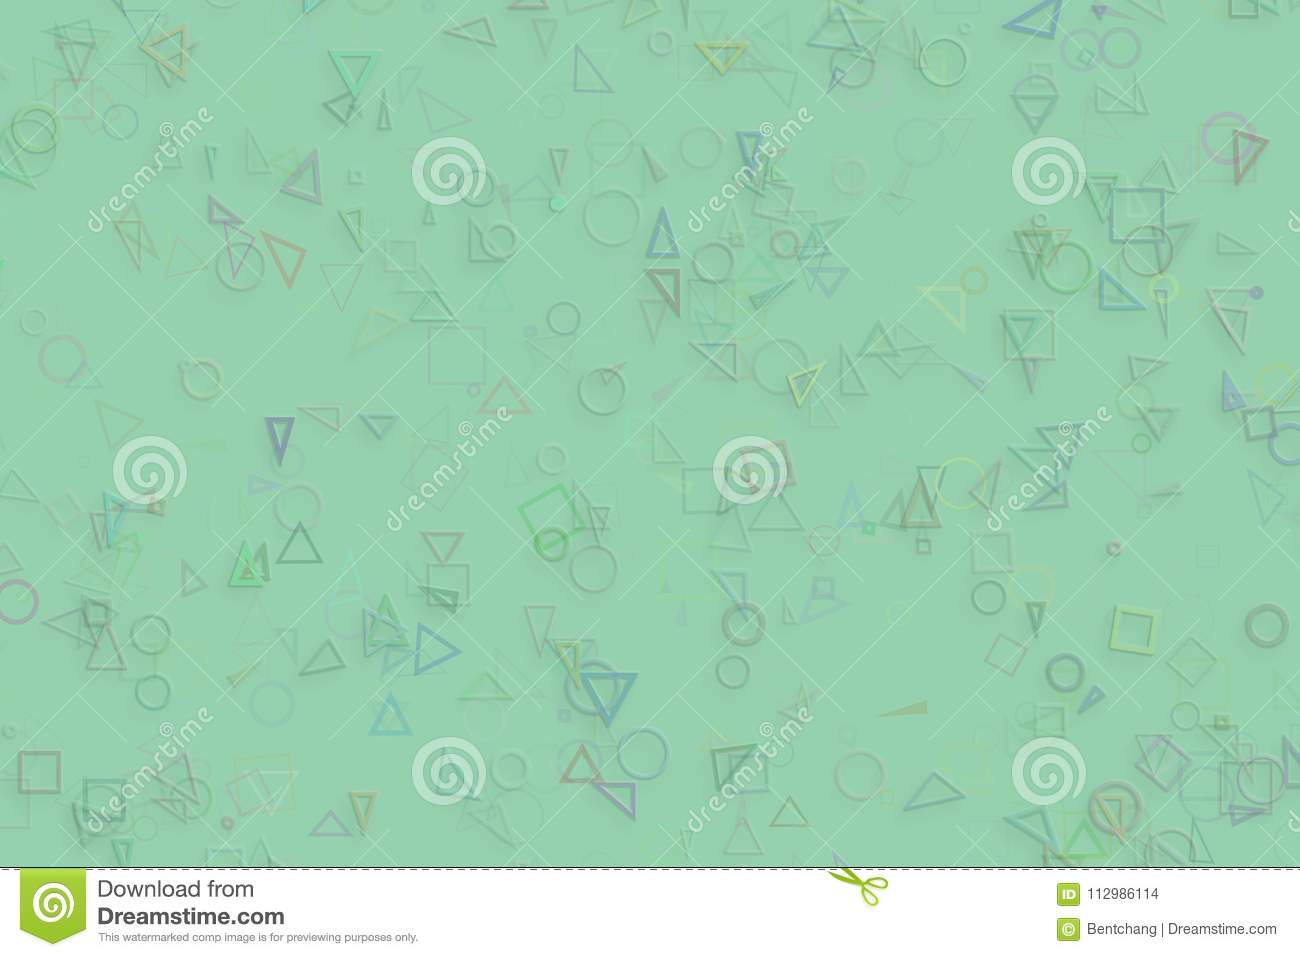 Decorative and pattern shape illustrations. Cover, drawing, color & square.